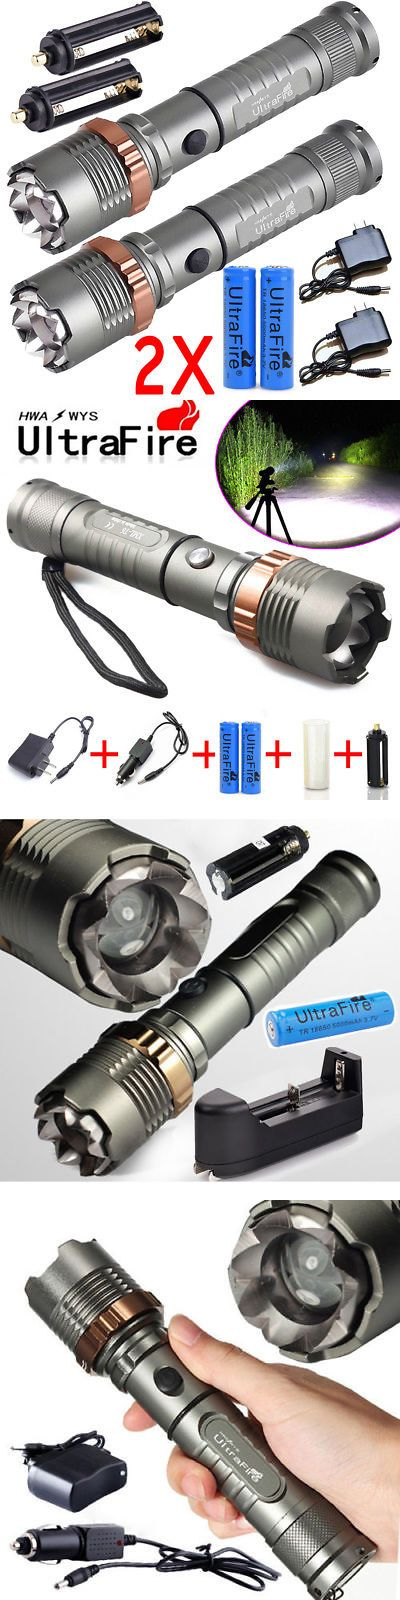 900000LM Tactical Police T6 LED Rechargeable Flashlight Torch Zoomable USA